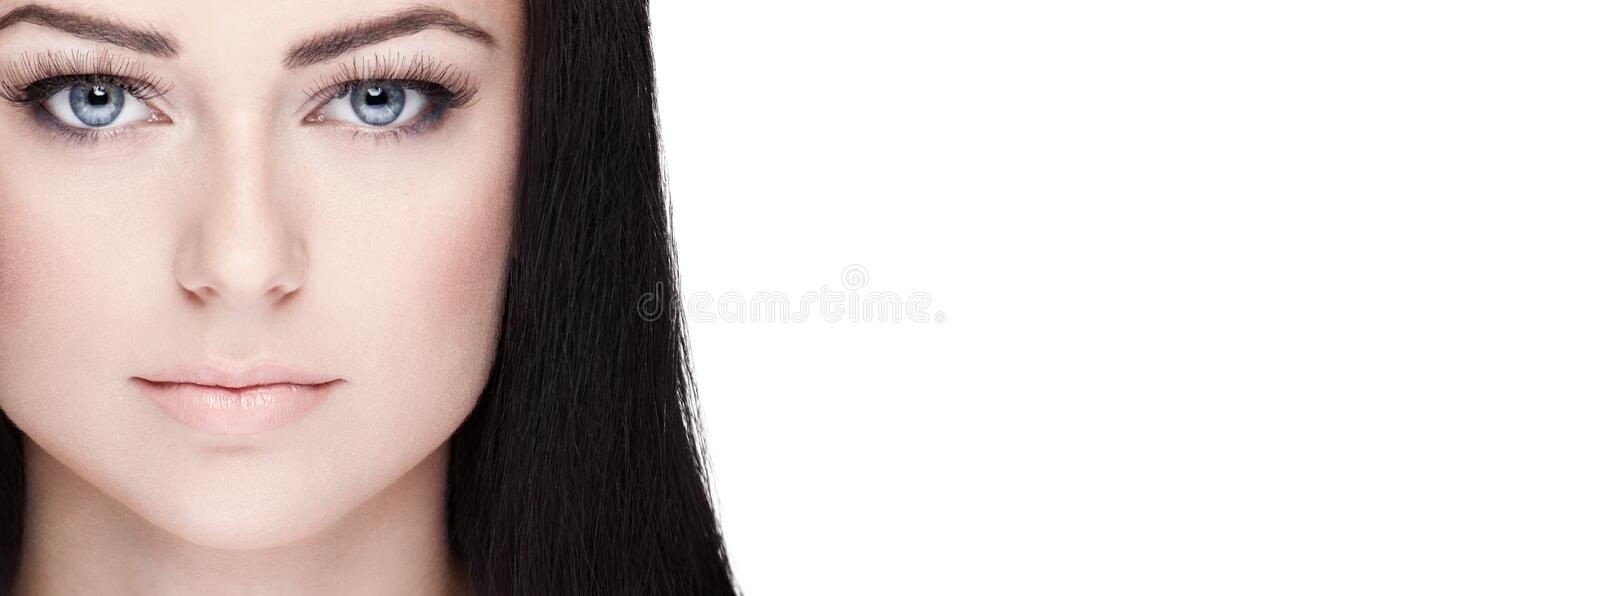 Beautiful brunette woman closeup portrait with space royalty free stock images